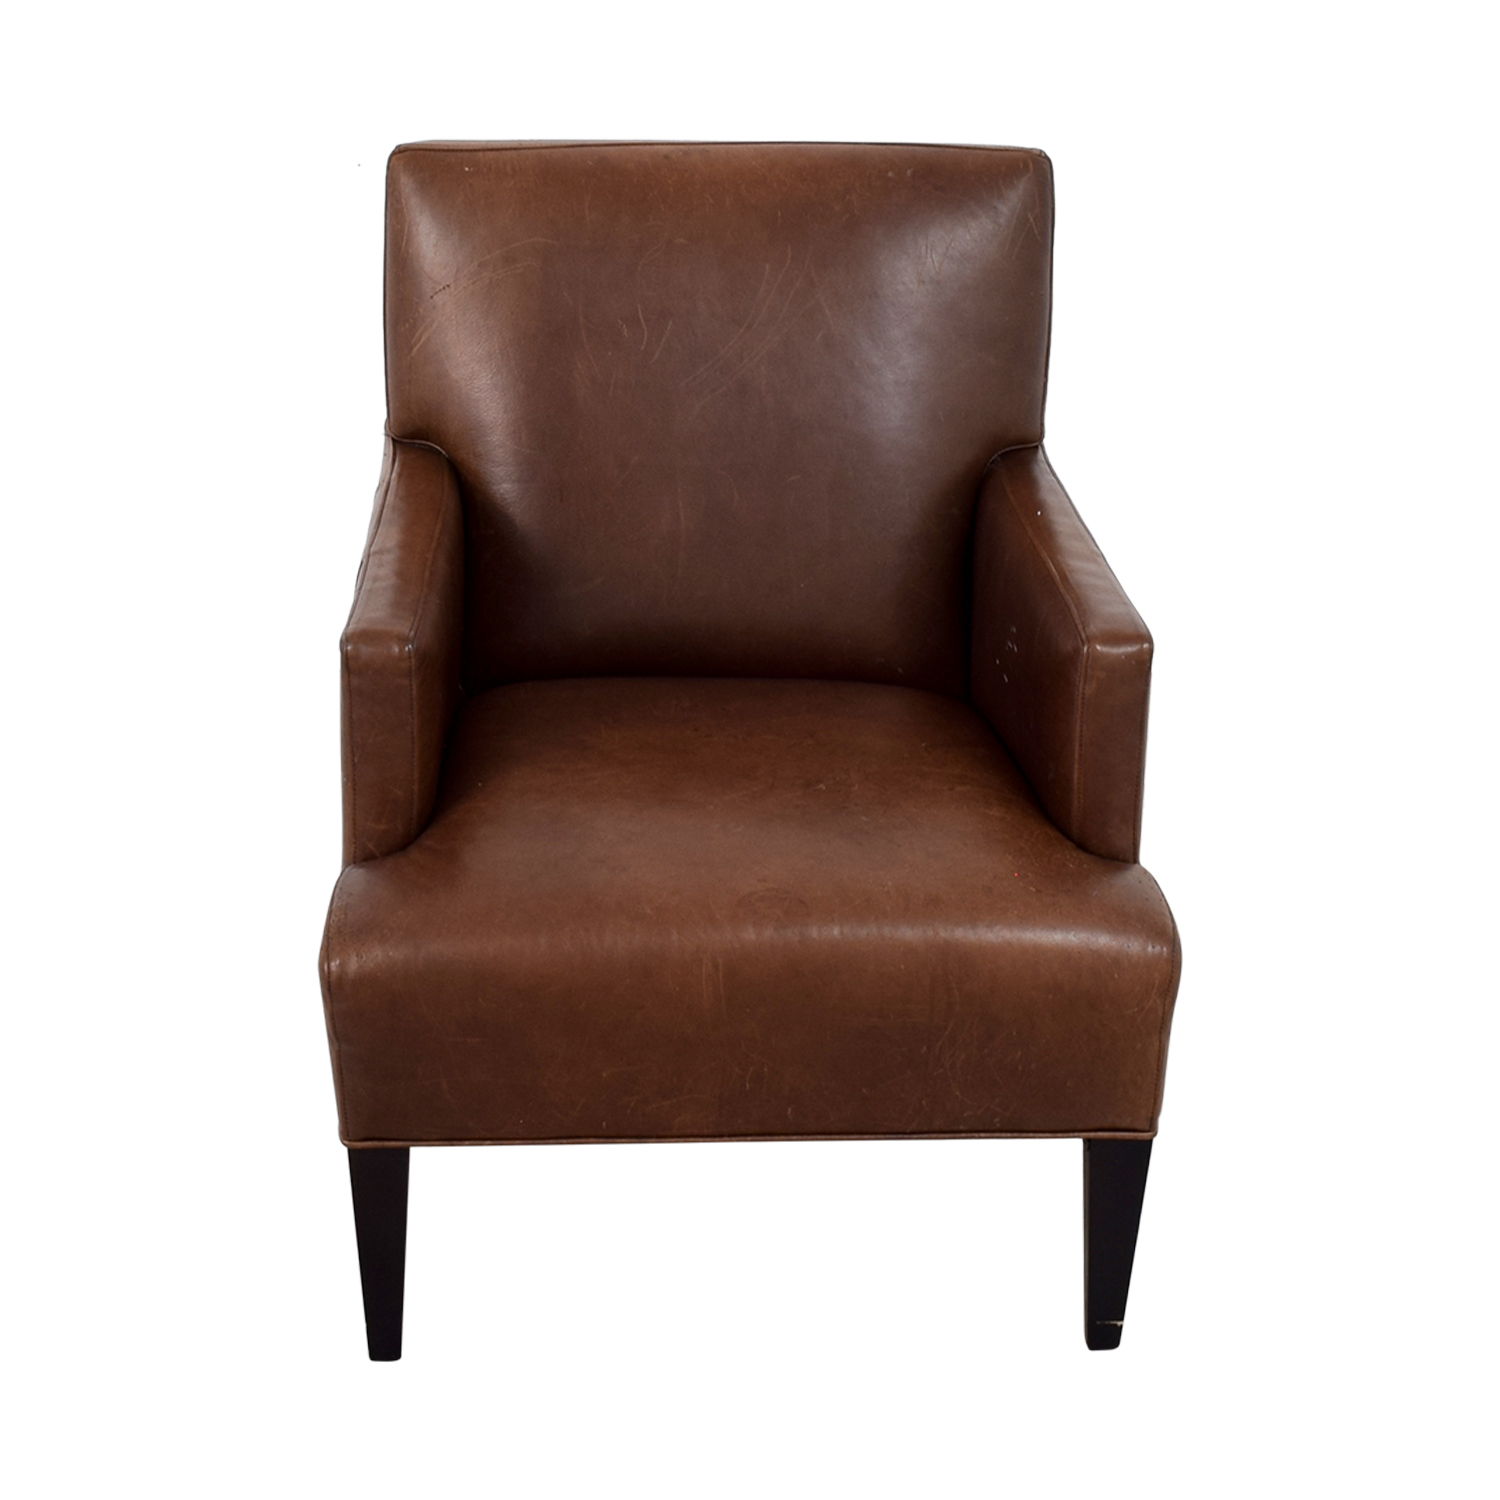 41 Off Crate Barrel Brown Leather Arm Chair Chairs